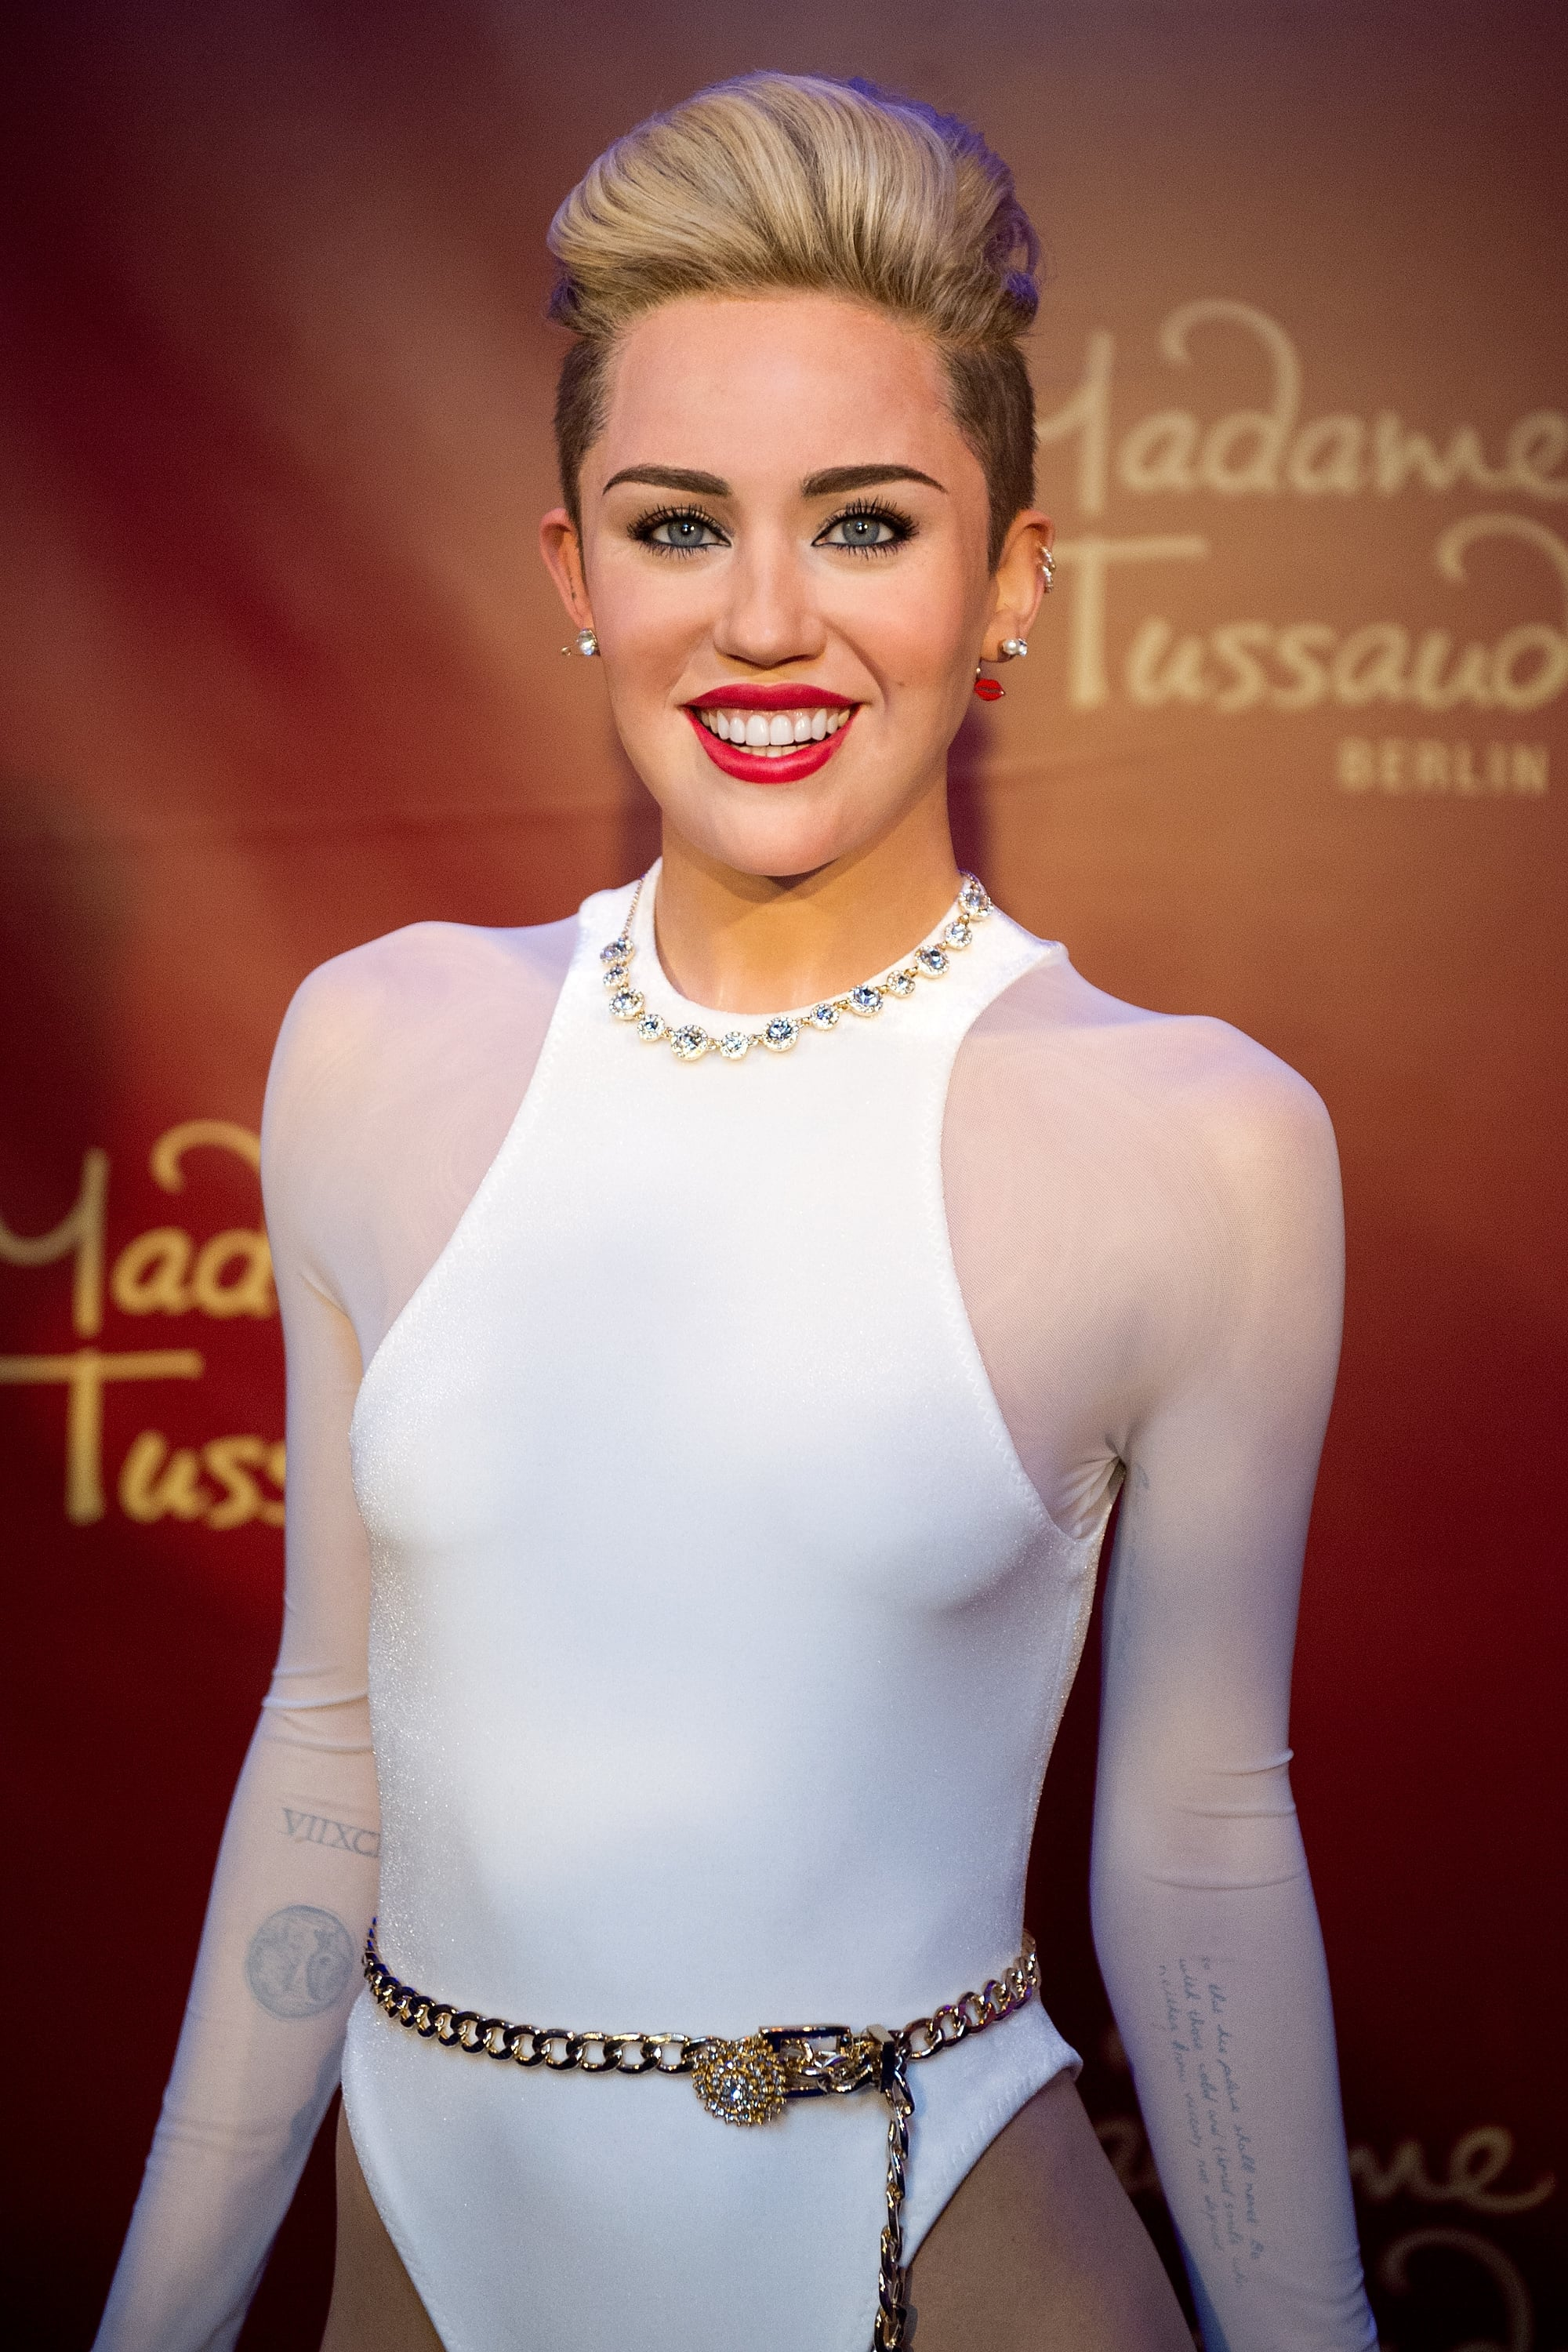 Miley Cyrus's Wax Figure Looks Scarily Real